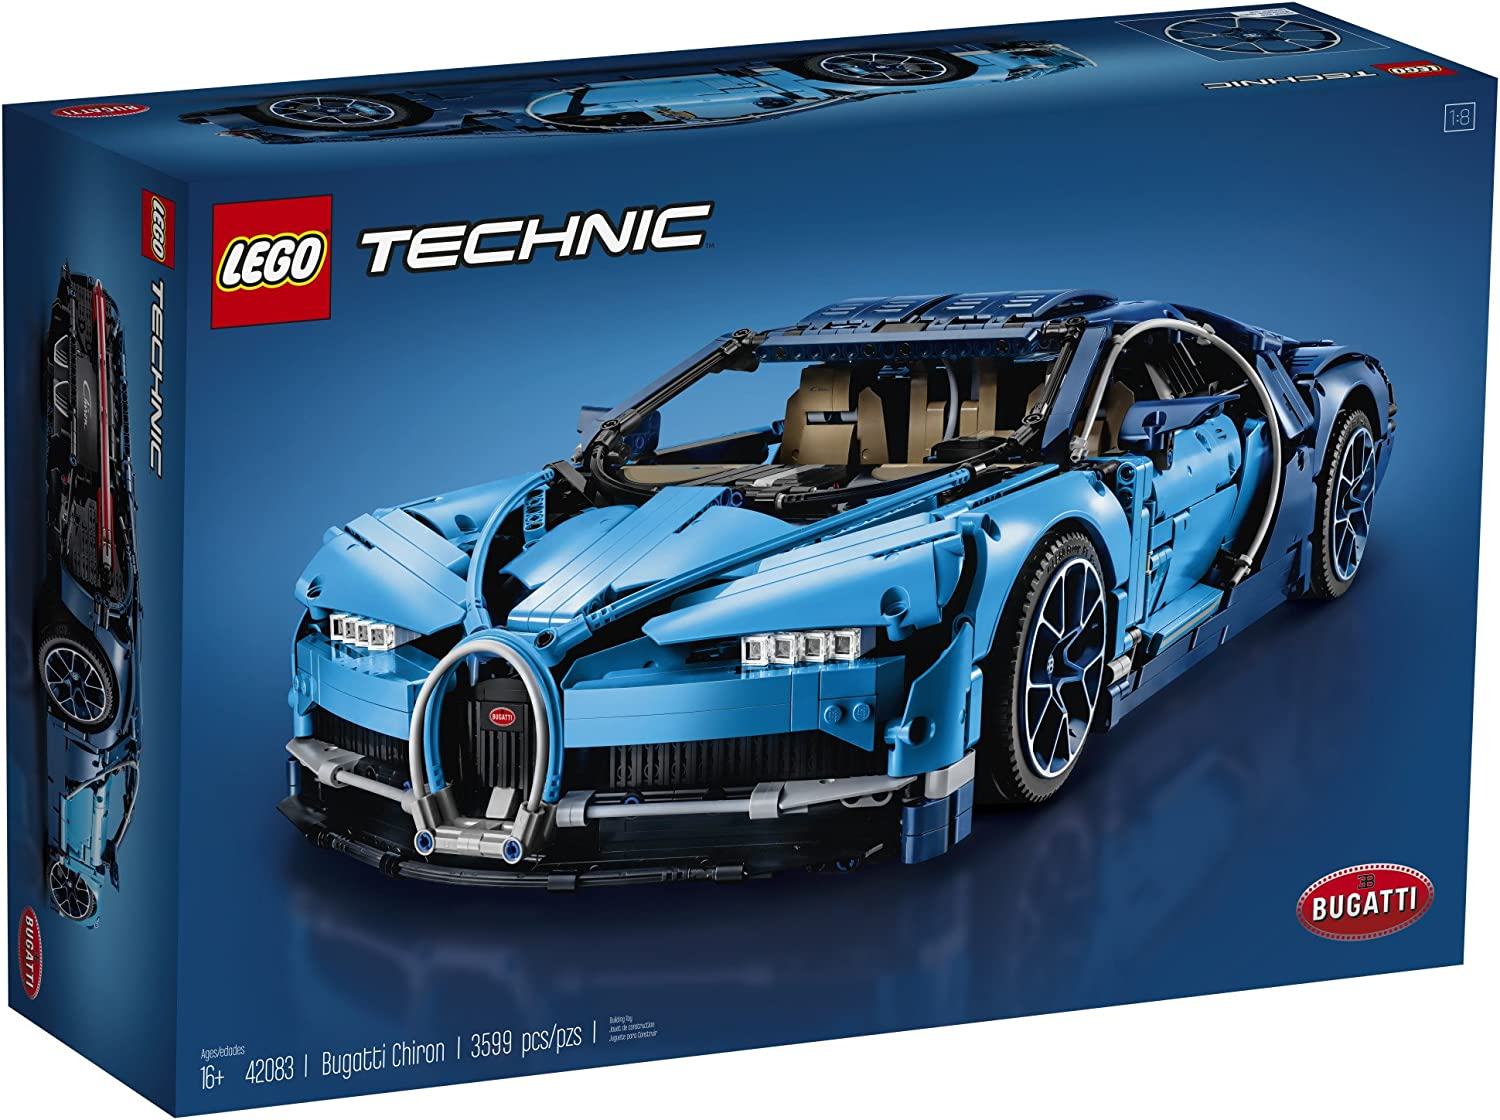 Lego Technic Bugatti Chiron 42083 Race Car Building Kit And Engineering Toy Adult Collectible Sports Car With Scale Model Engine 3599 Piece Building Sets Amazon Canada